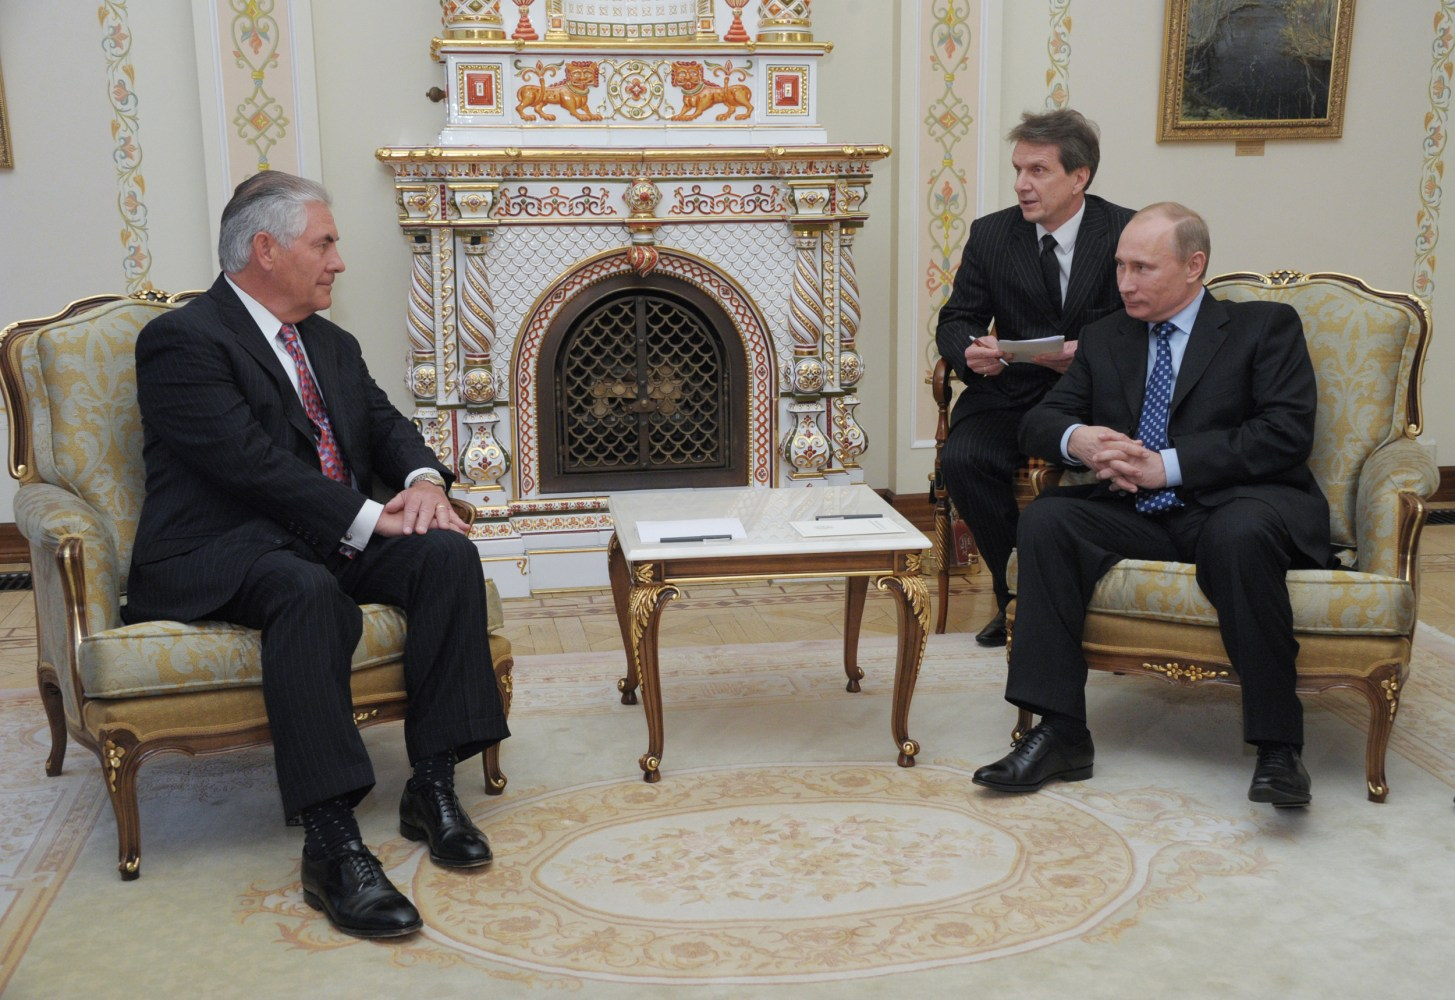 Image result for PHOTOS OF PRESIDENT TRUMP/ REX TILLERSON WITH RUSSIANS AT WHITE HOUSE